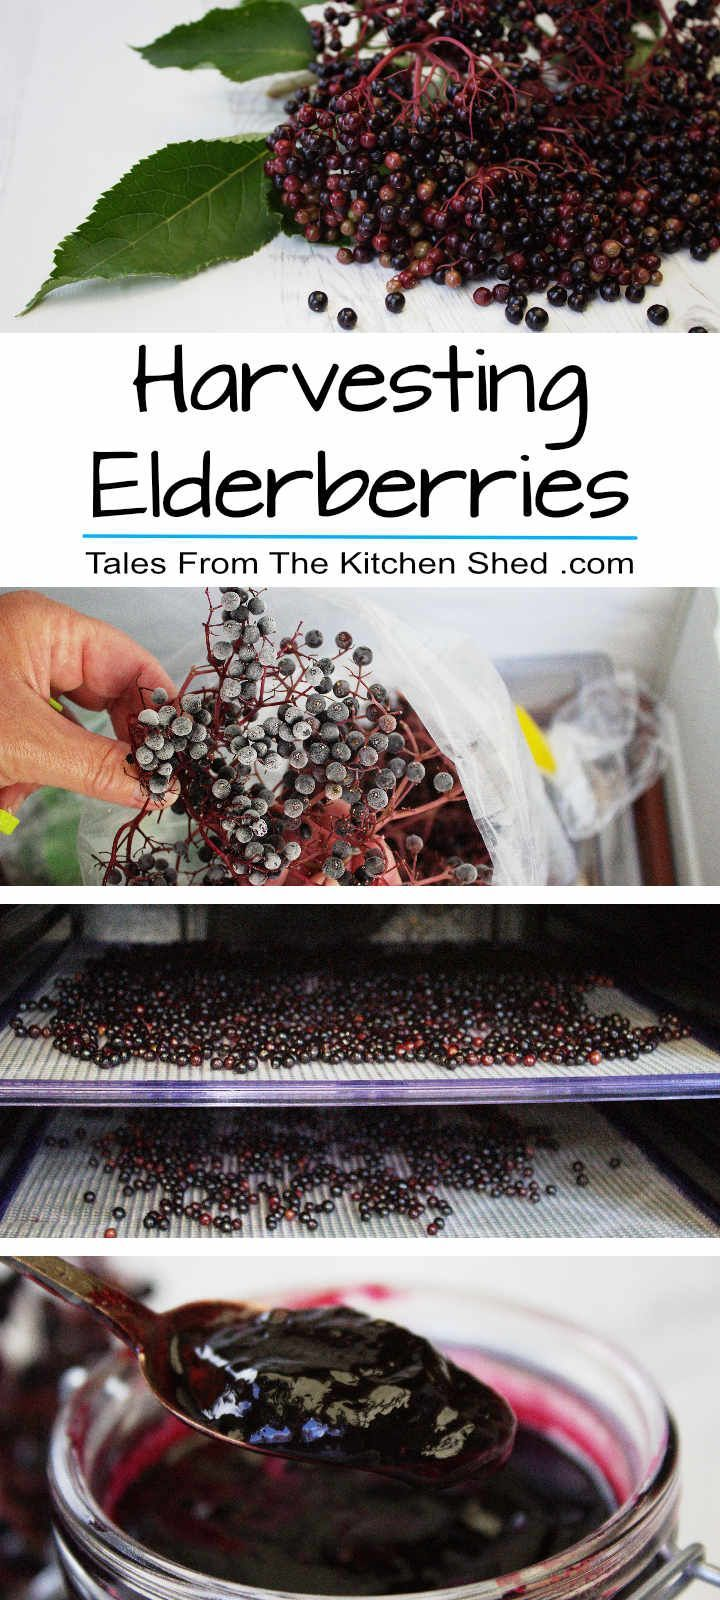 Harvesting Elderberries: Picking, Preserving